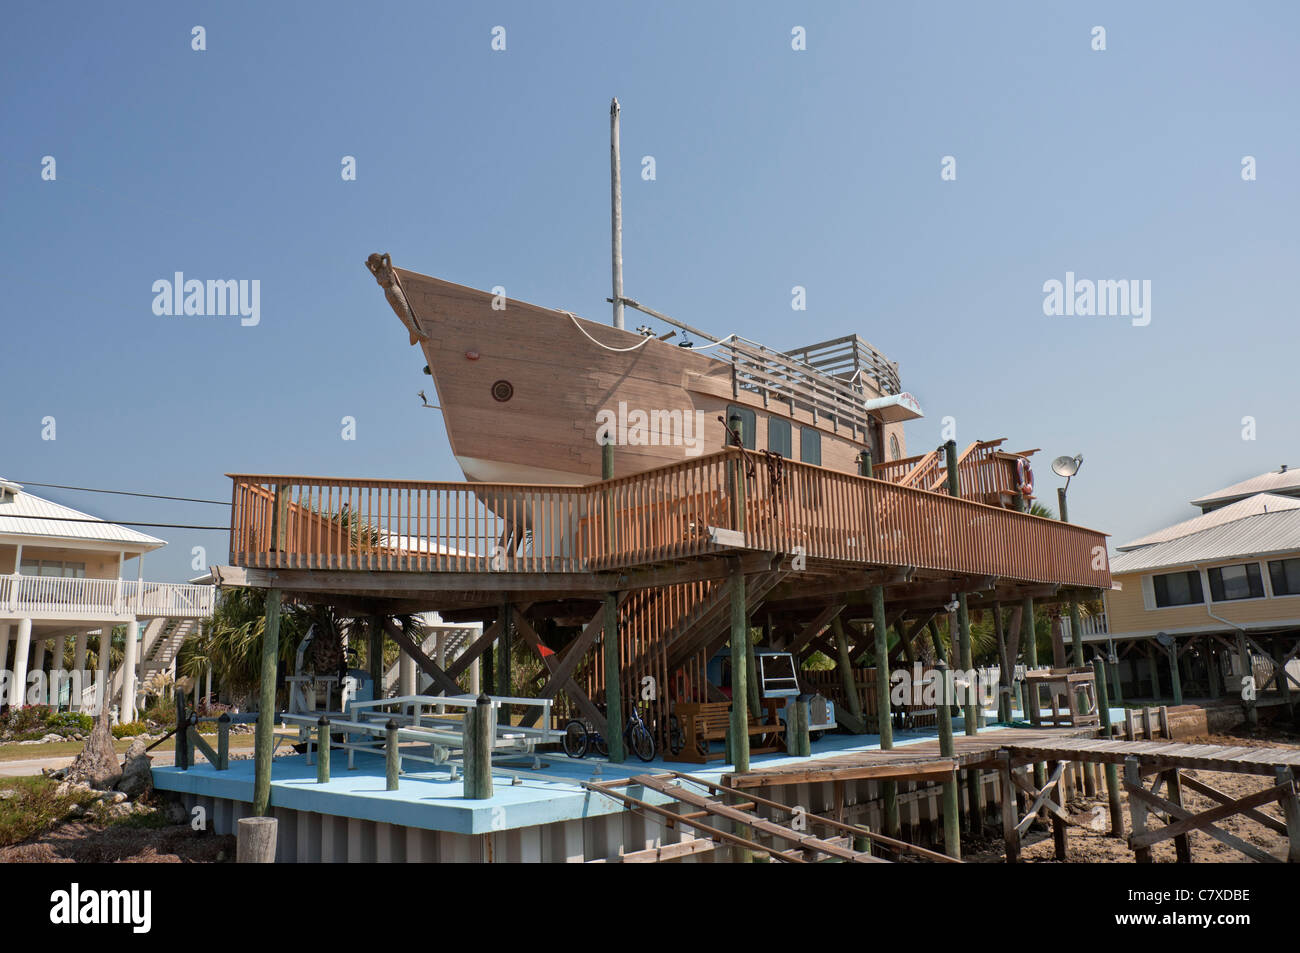 Beach cottage shaped like a boat sits atop pilings in the funky little town of Horseshoe Beach along Florida's - Stock Image